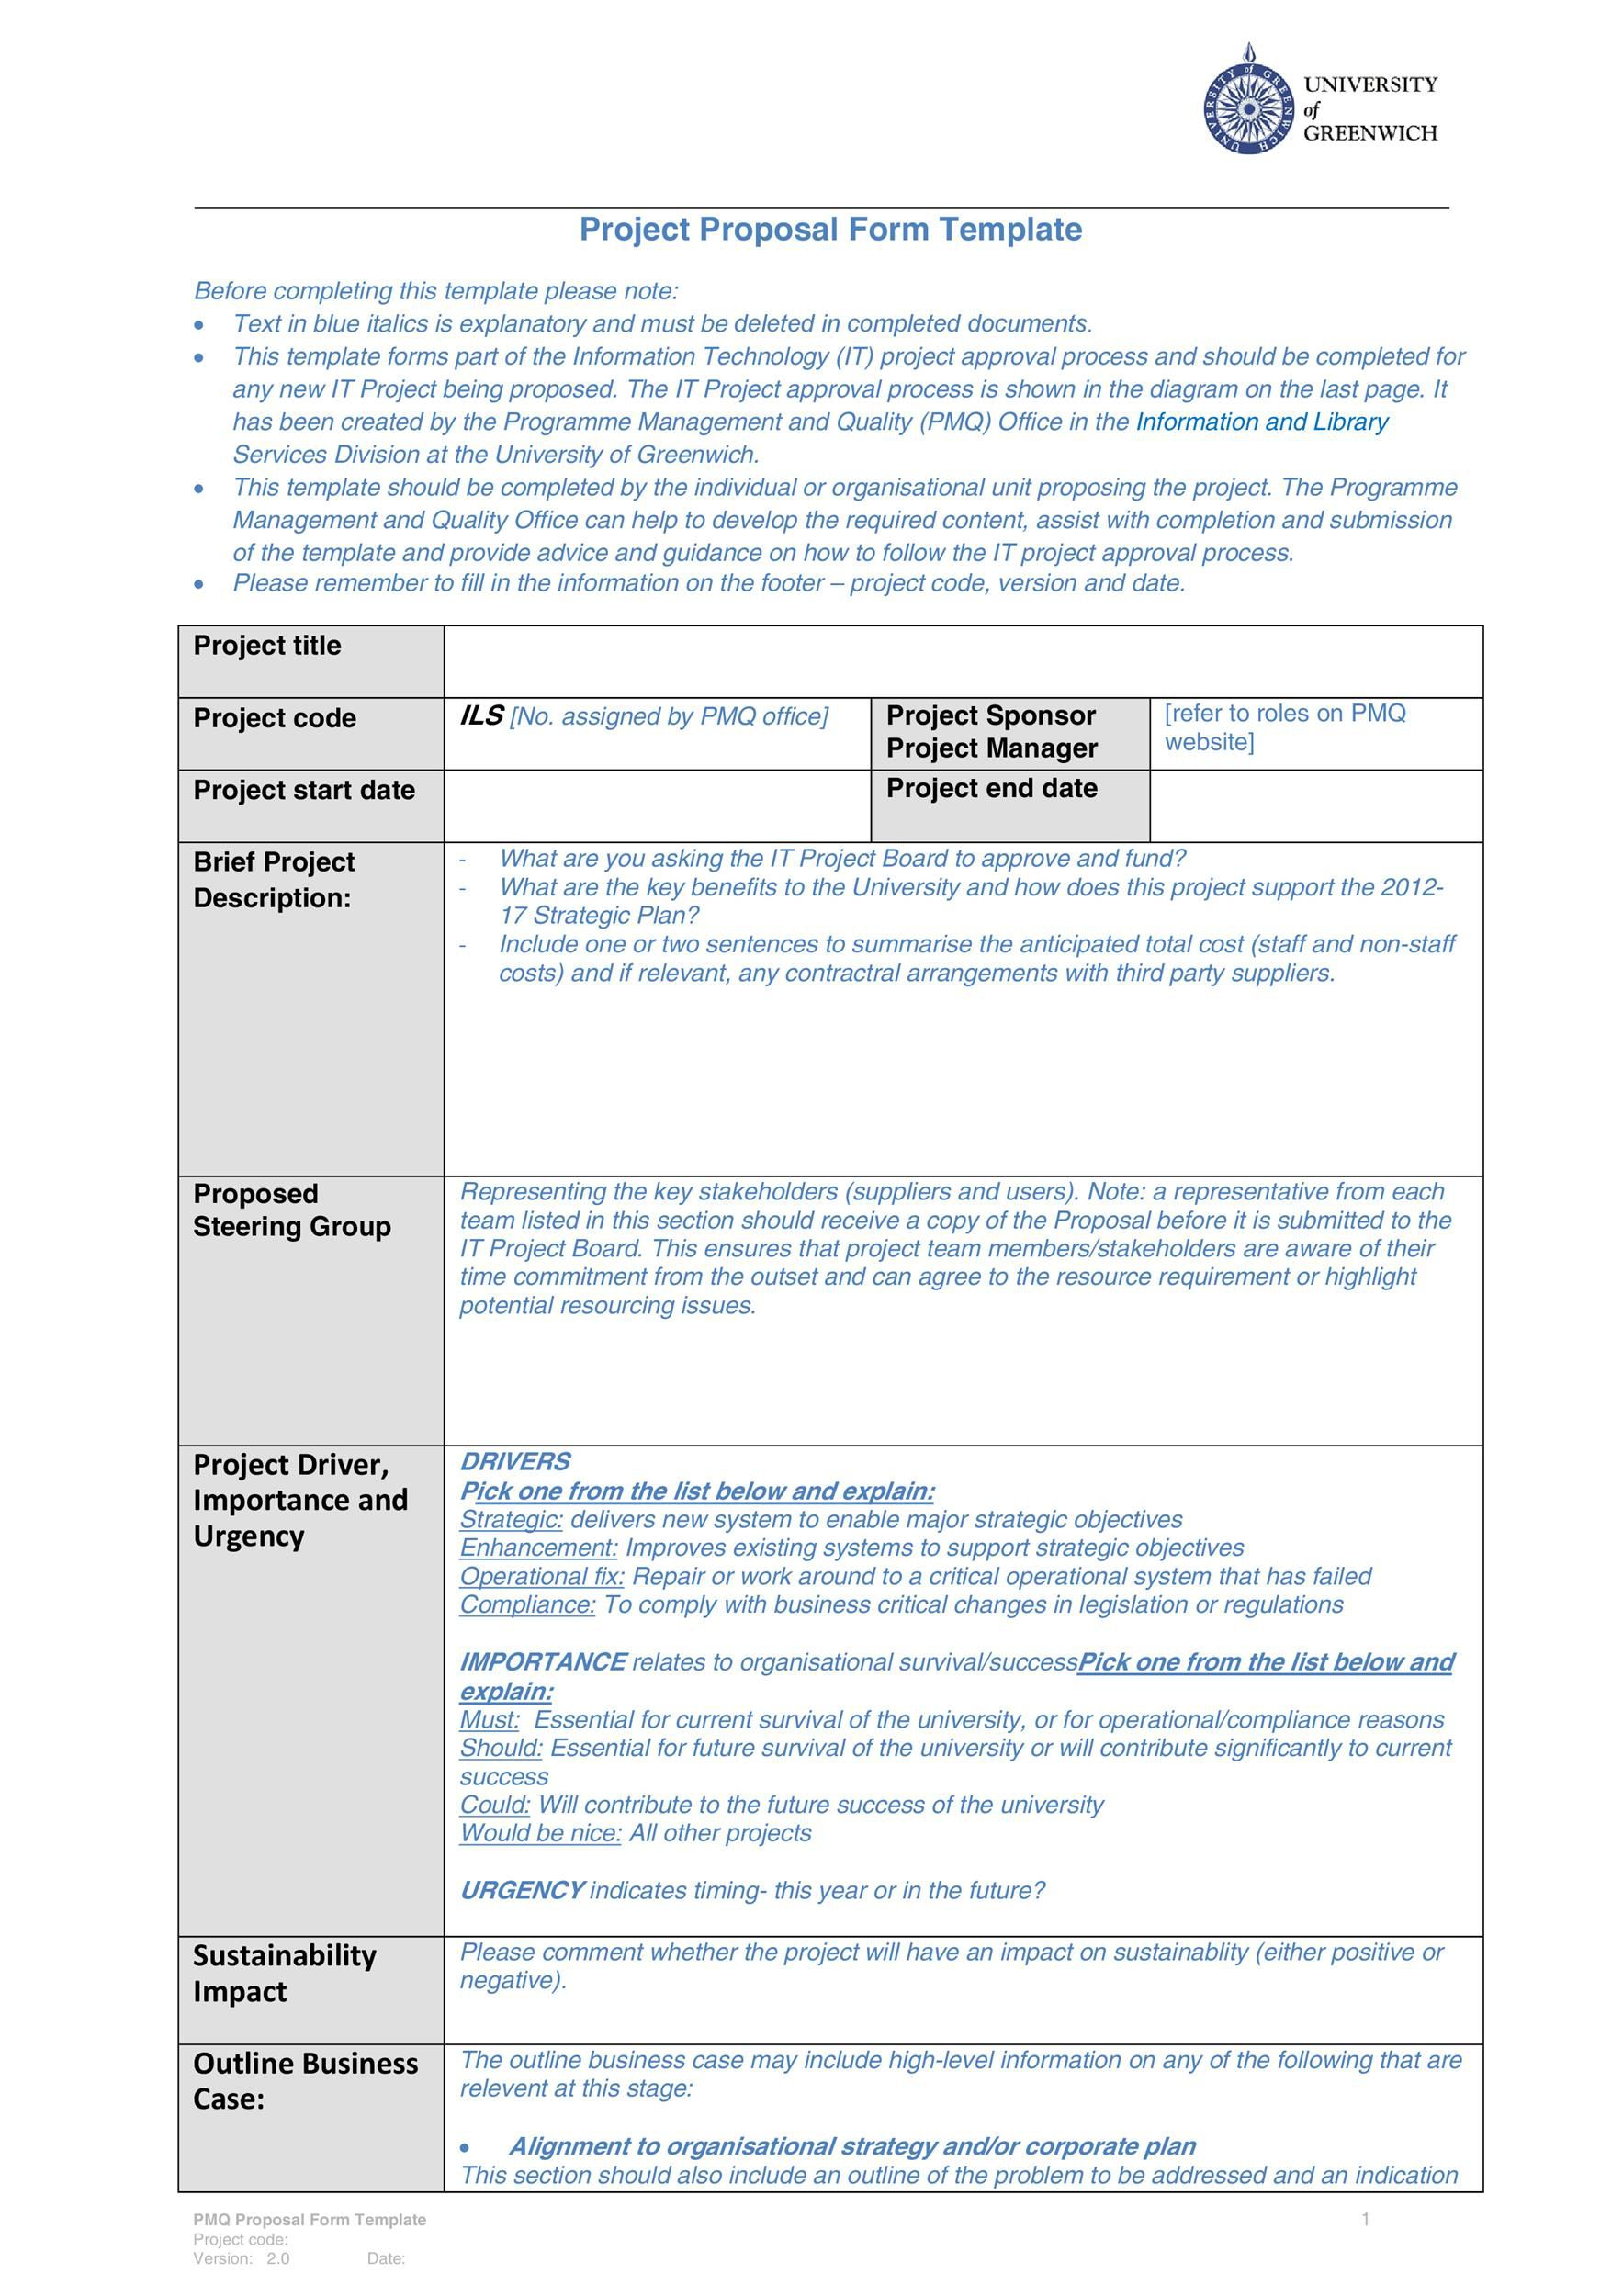 007 Top Free Project Proposal Template Inspiration  Document Ppt PdfFull